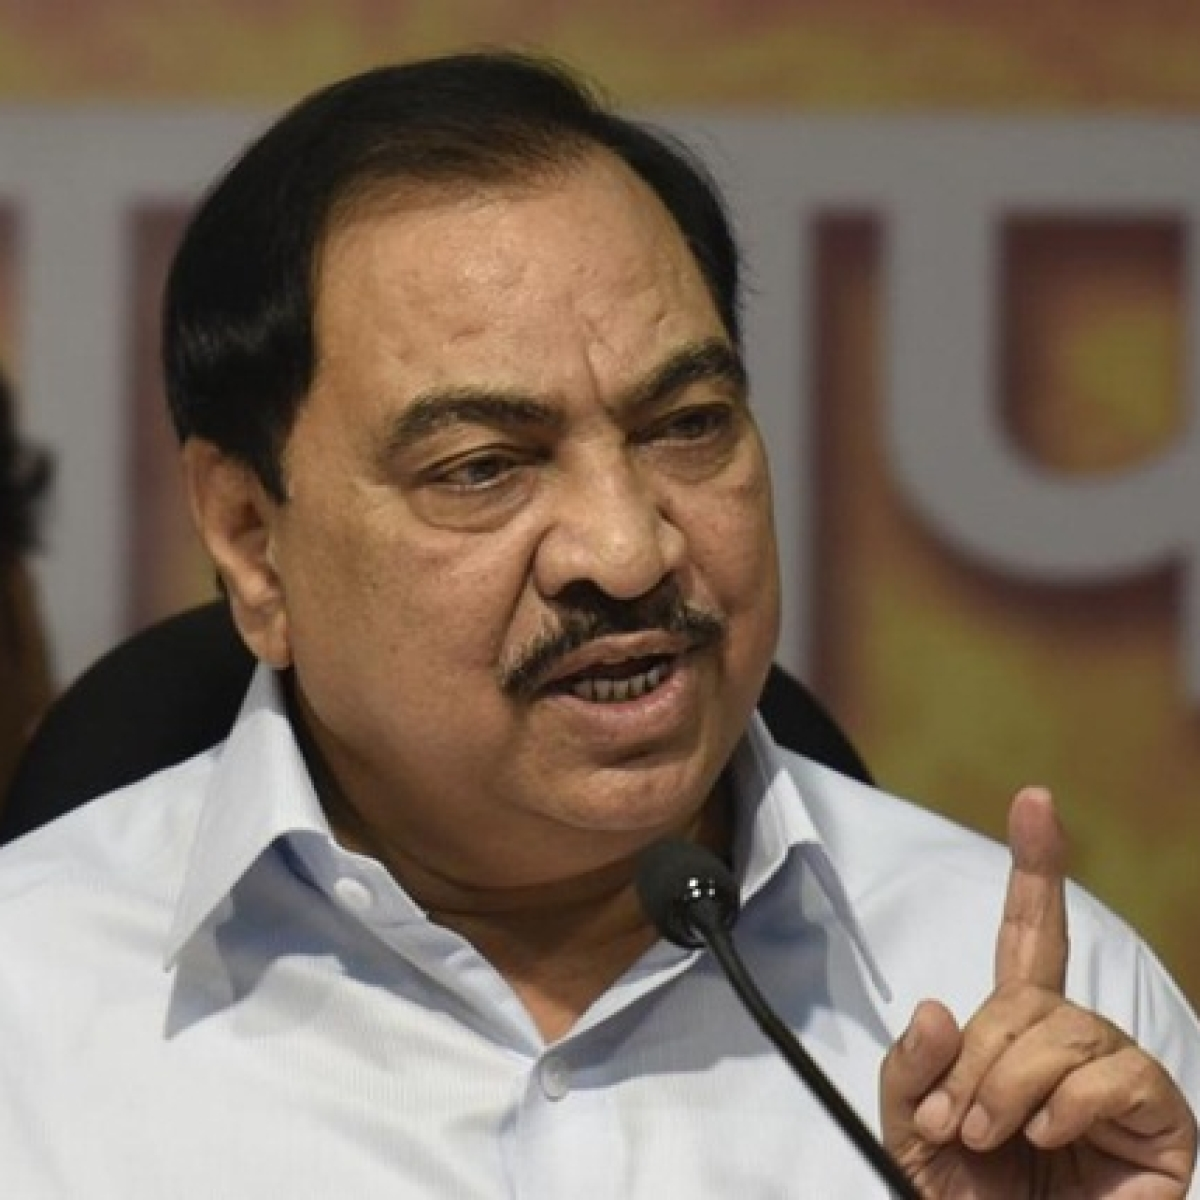 Eknath Khadse will reveal the names of BJP leaders who helped 'defeat' his daughter